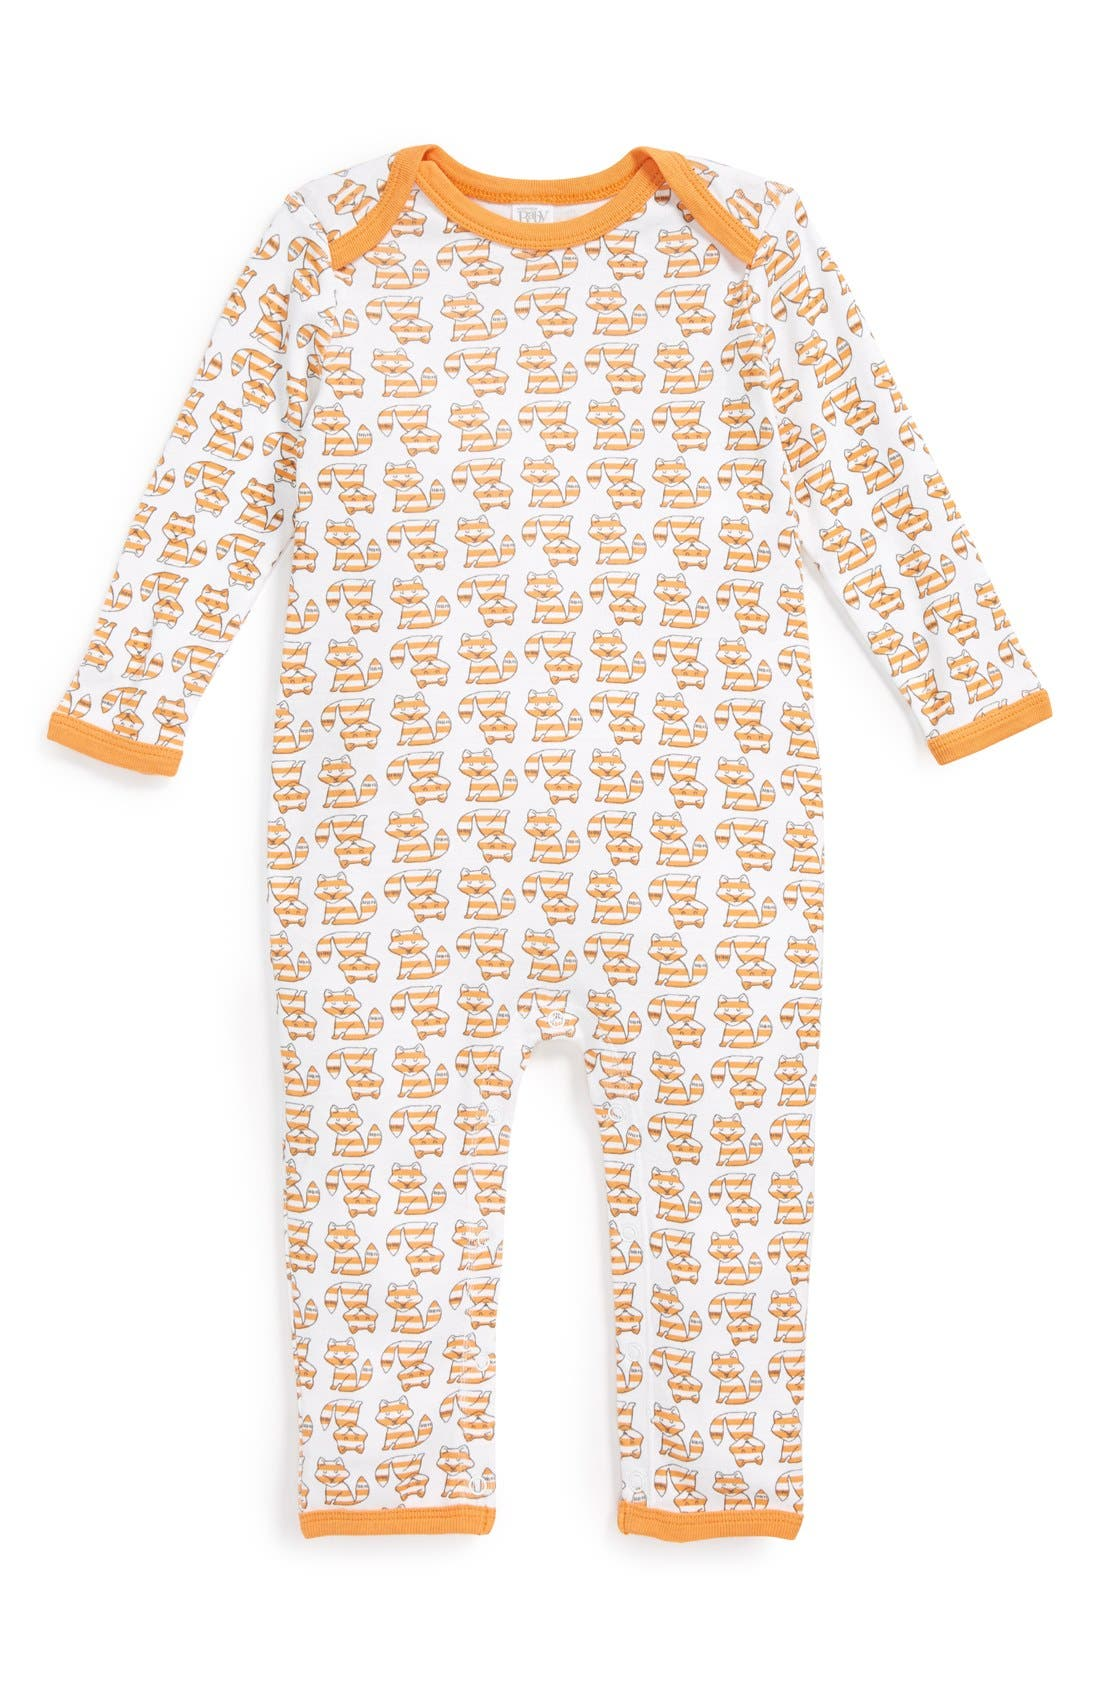 Alternate Image 1 Selected - Nordstrom Baby Print Romper (Baby Boys)